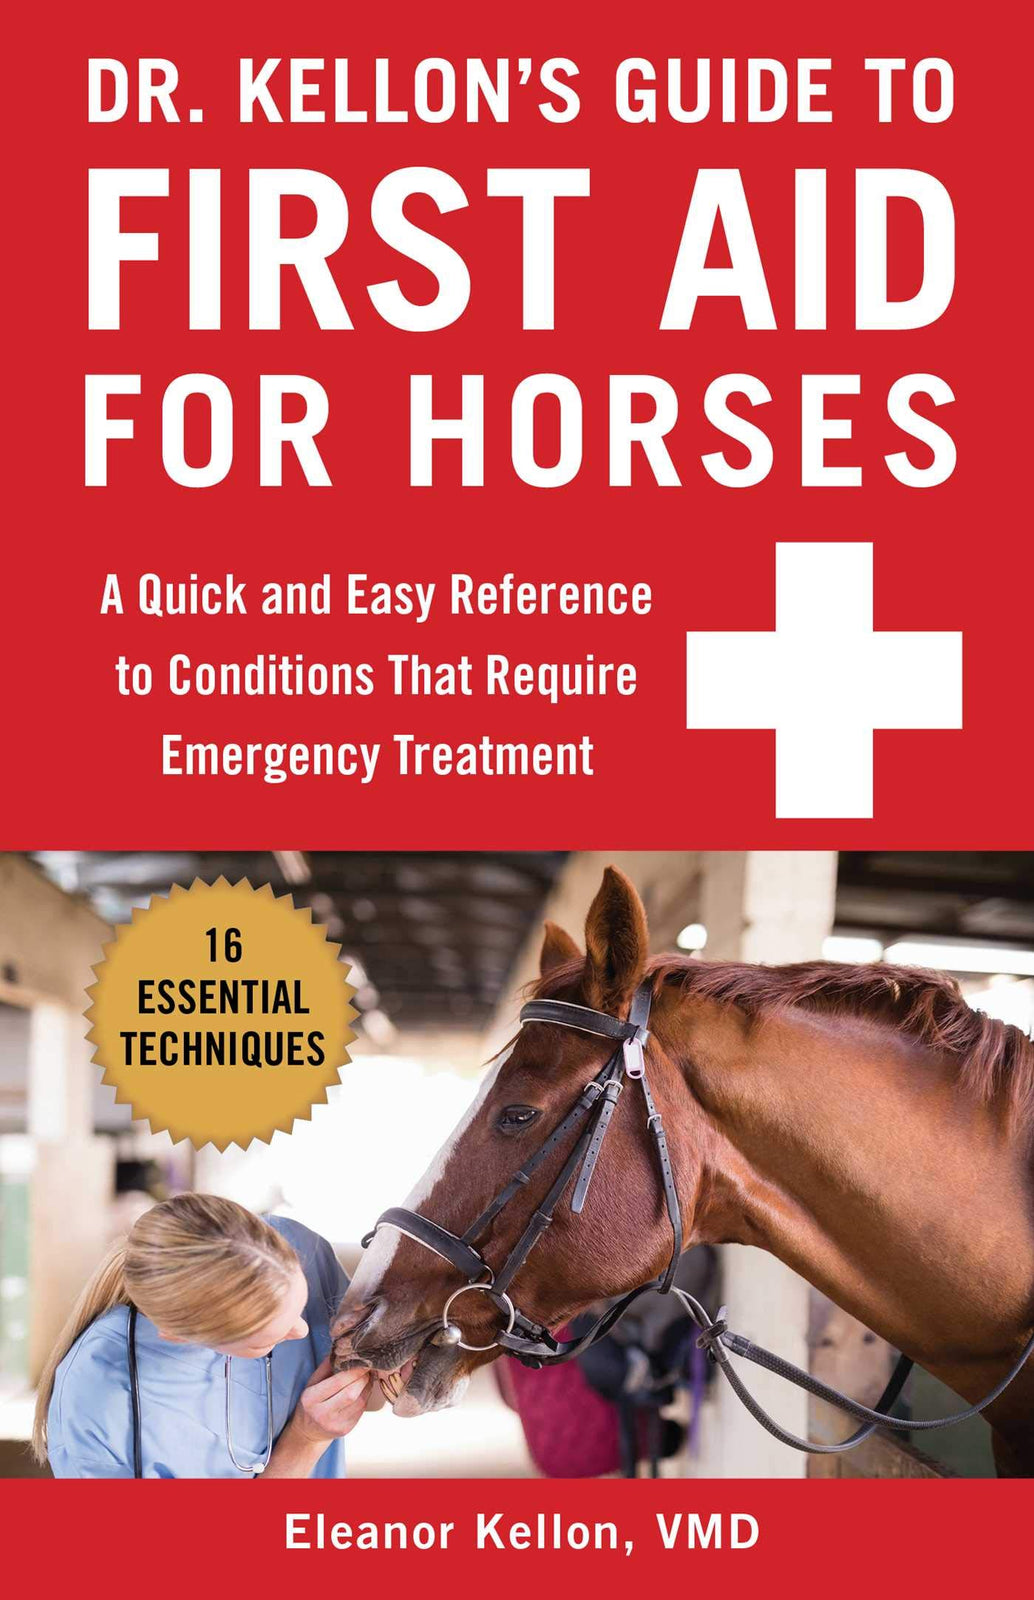 Dr. Kellon's Equine First Aid Book - New Edition